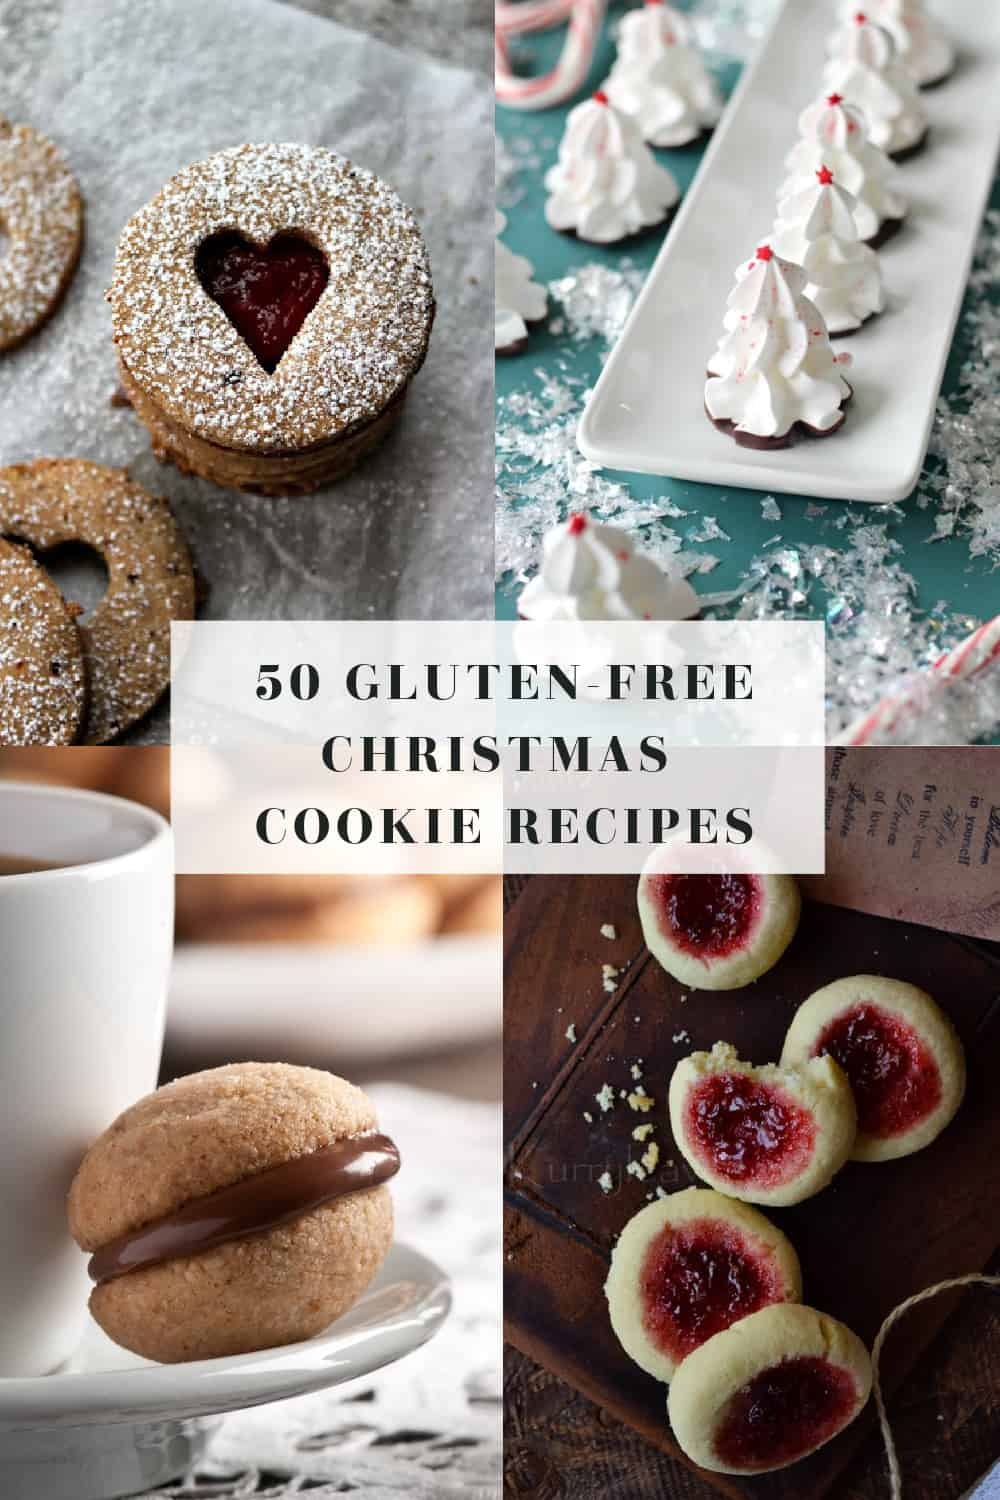 50 Gluten-Free Christmas Cookie Recipes - holiday cookie recipes that are gluten-free! Many dairy-free, paleo, and refined sugar-free options